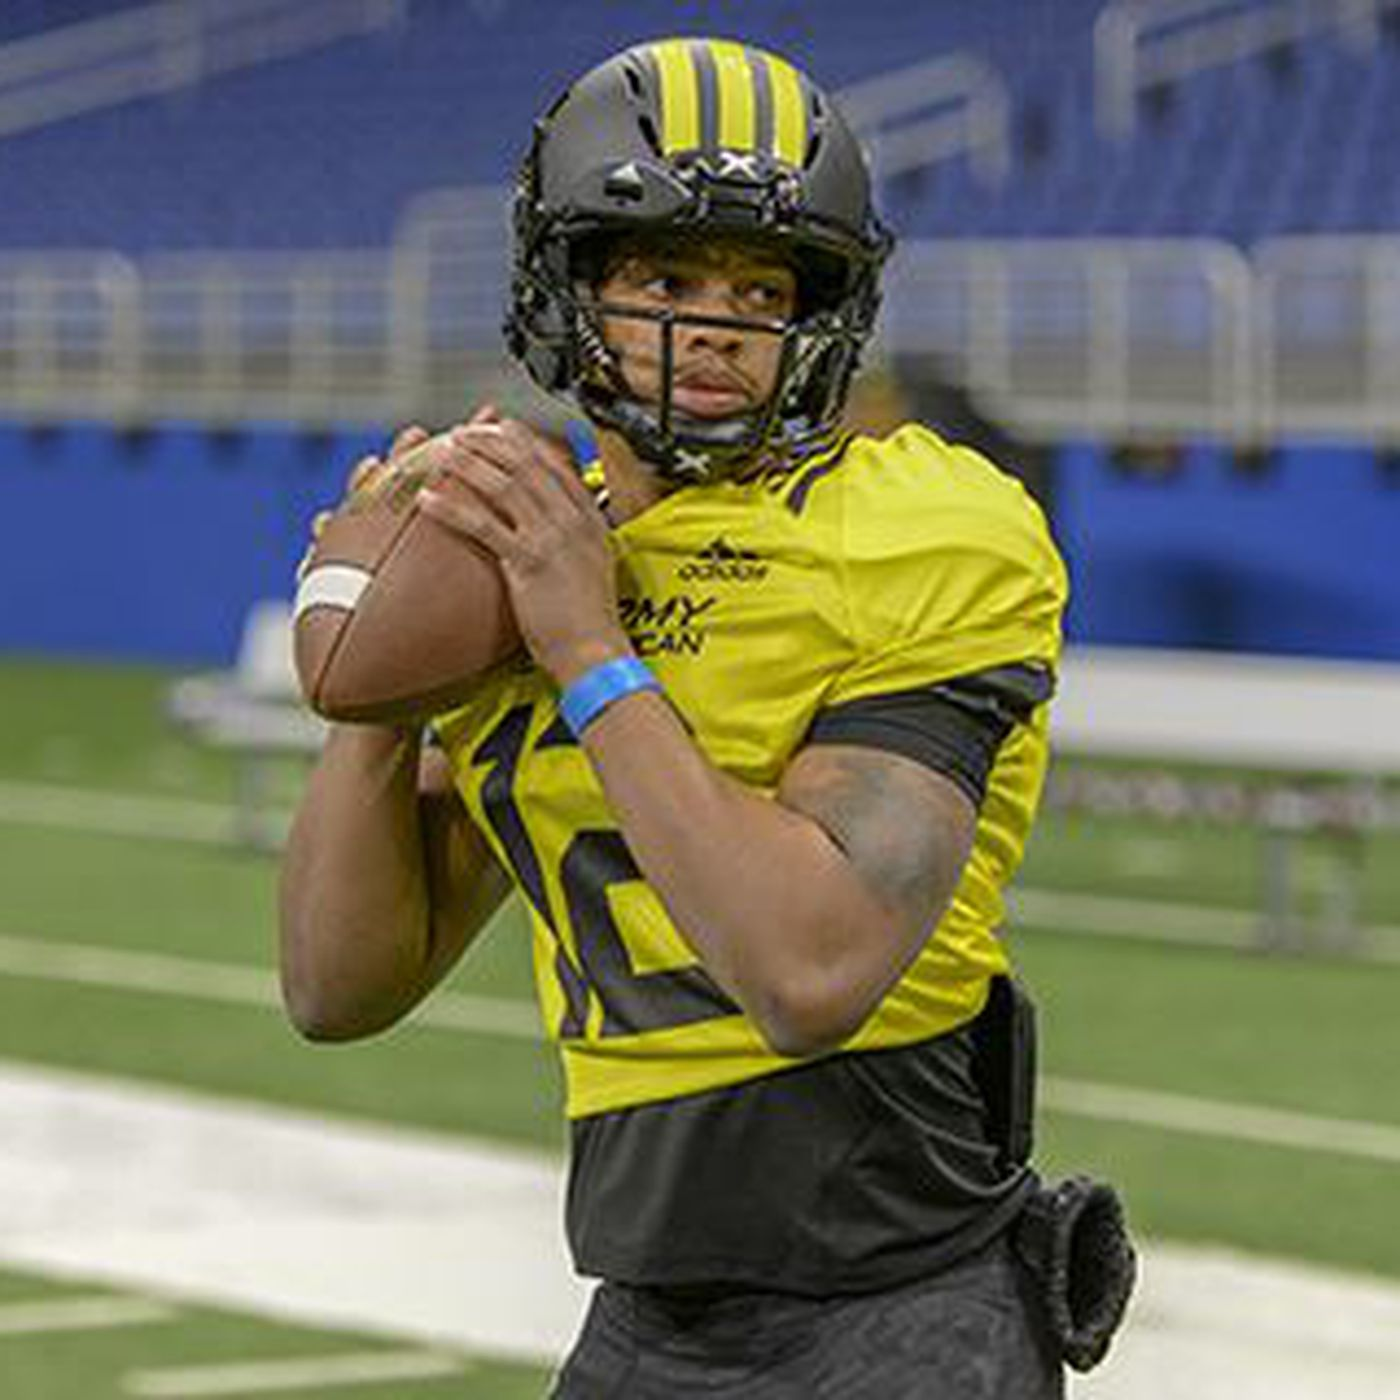 efdc6d3ea47 Miami Hurricanes Recruiting Radar  Canes recruits in the U.S. Army All-American  Bowl